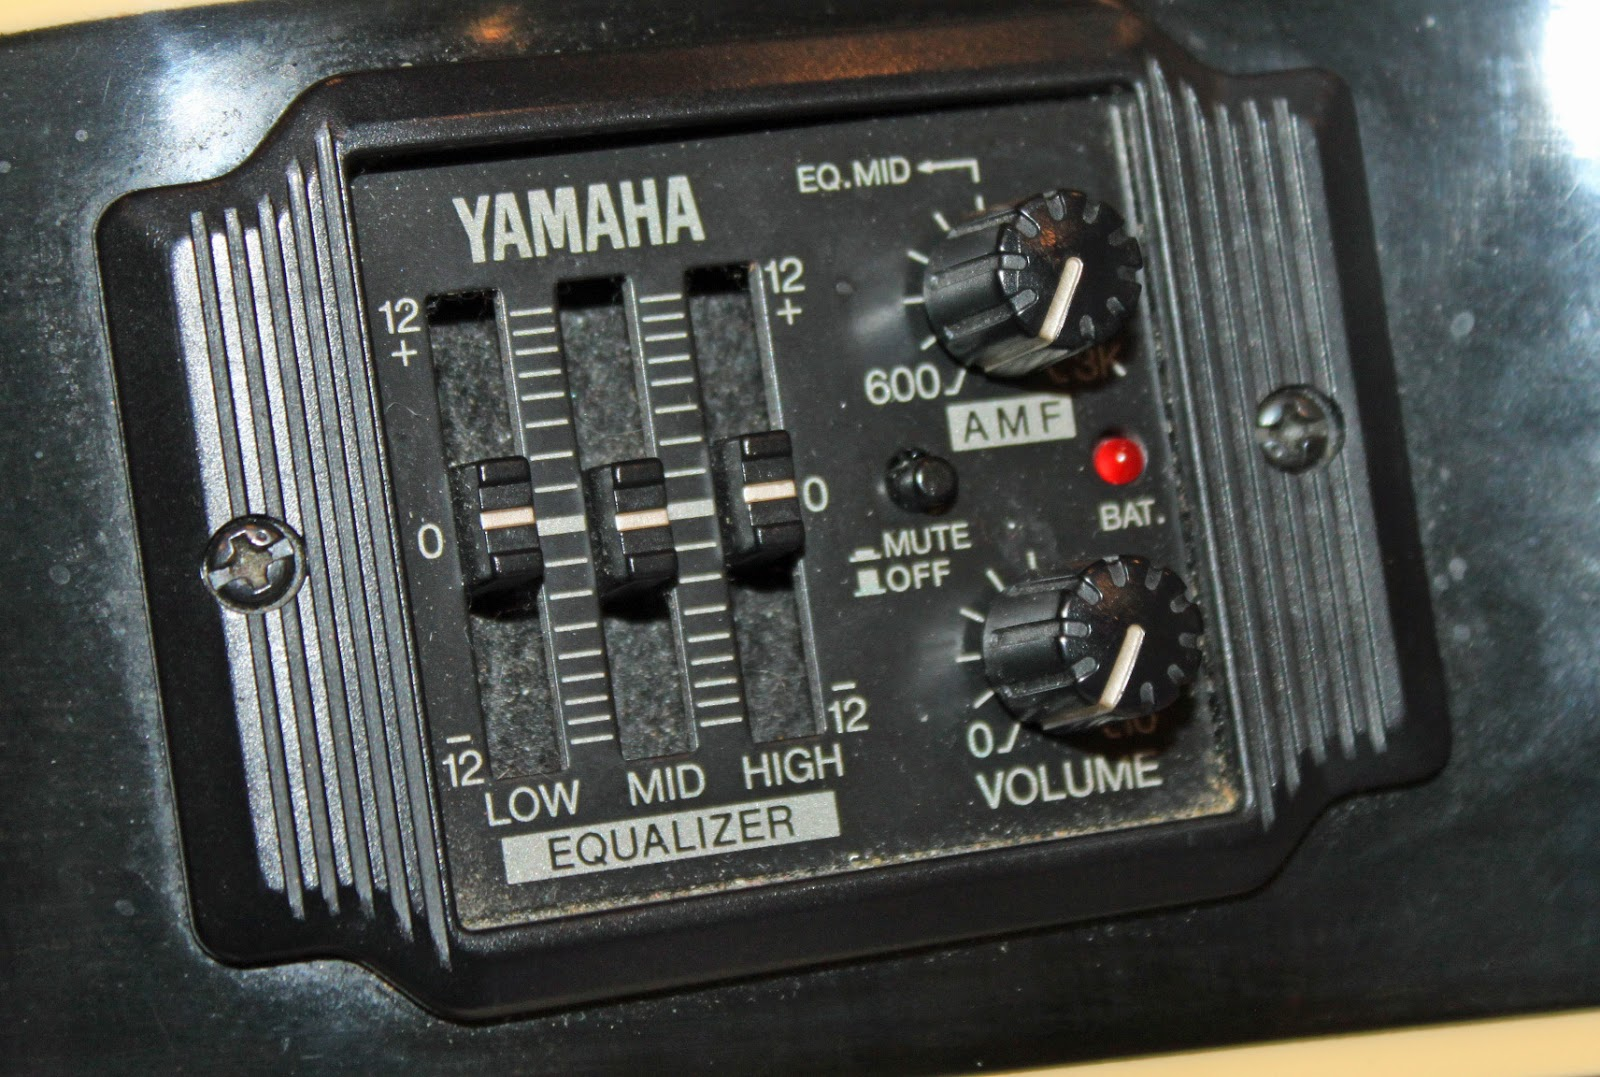 Classic Guitar Experience Yamaha Apx 6a Accustic Electric 3 Band Equalizer Control My Review Of Ace The Is Very Favorable I Like Action Between Neck And Strings Similar To An But Not